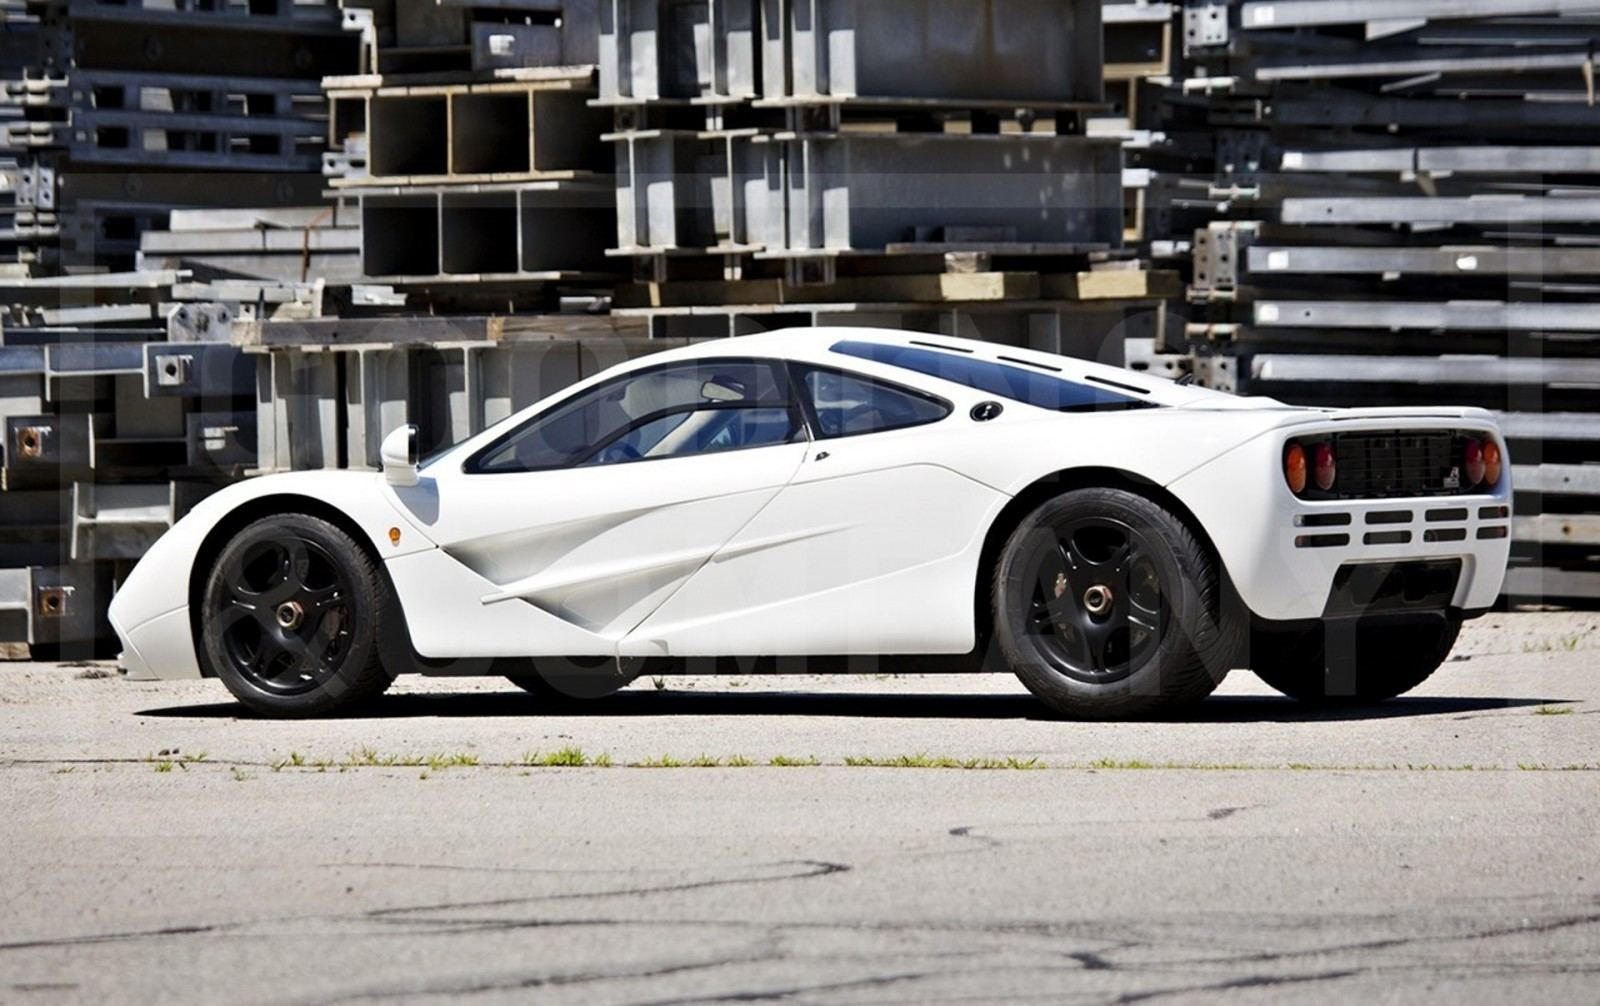 Gooding Pebble Beach 2014 Preview - 1995 McLaren F1 - The Only White F1 Ever Made = $12Mil+ 7